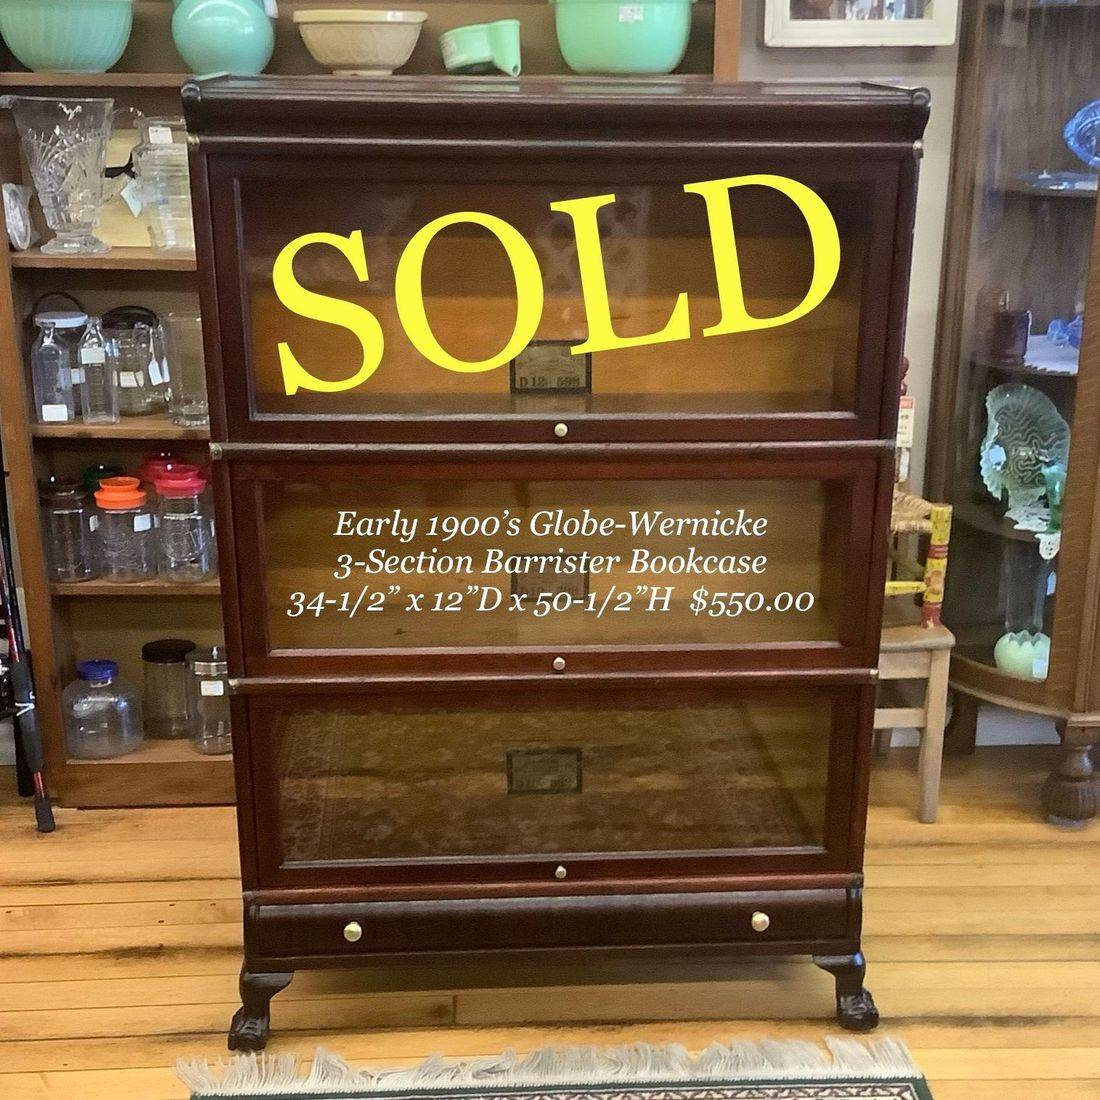 Early 1900's Globe-Wernicke 3-Section Barrister Bookcase   $550.00